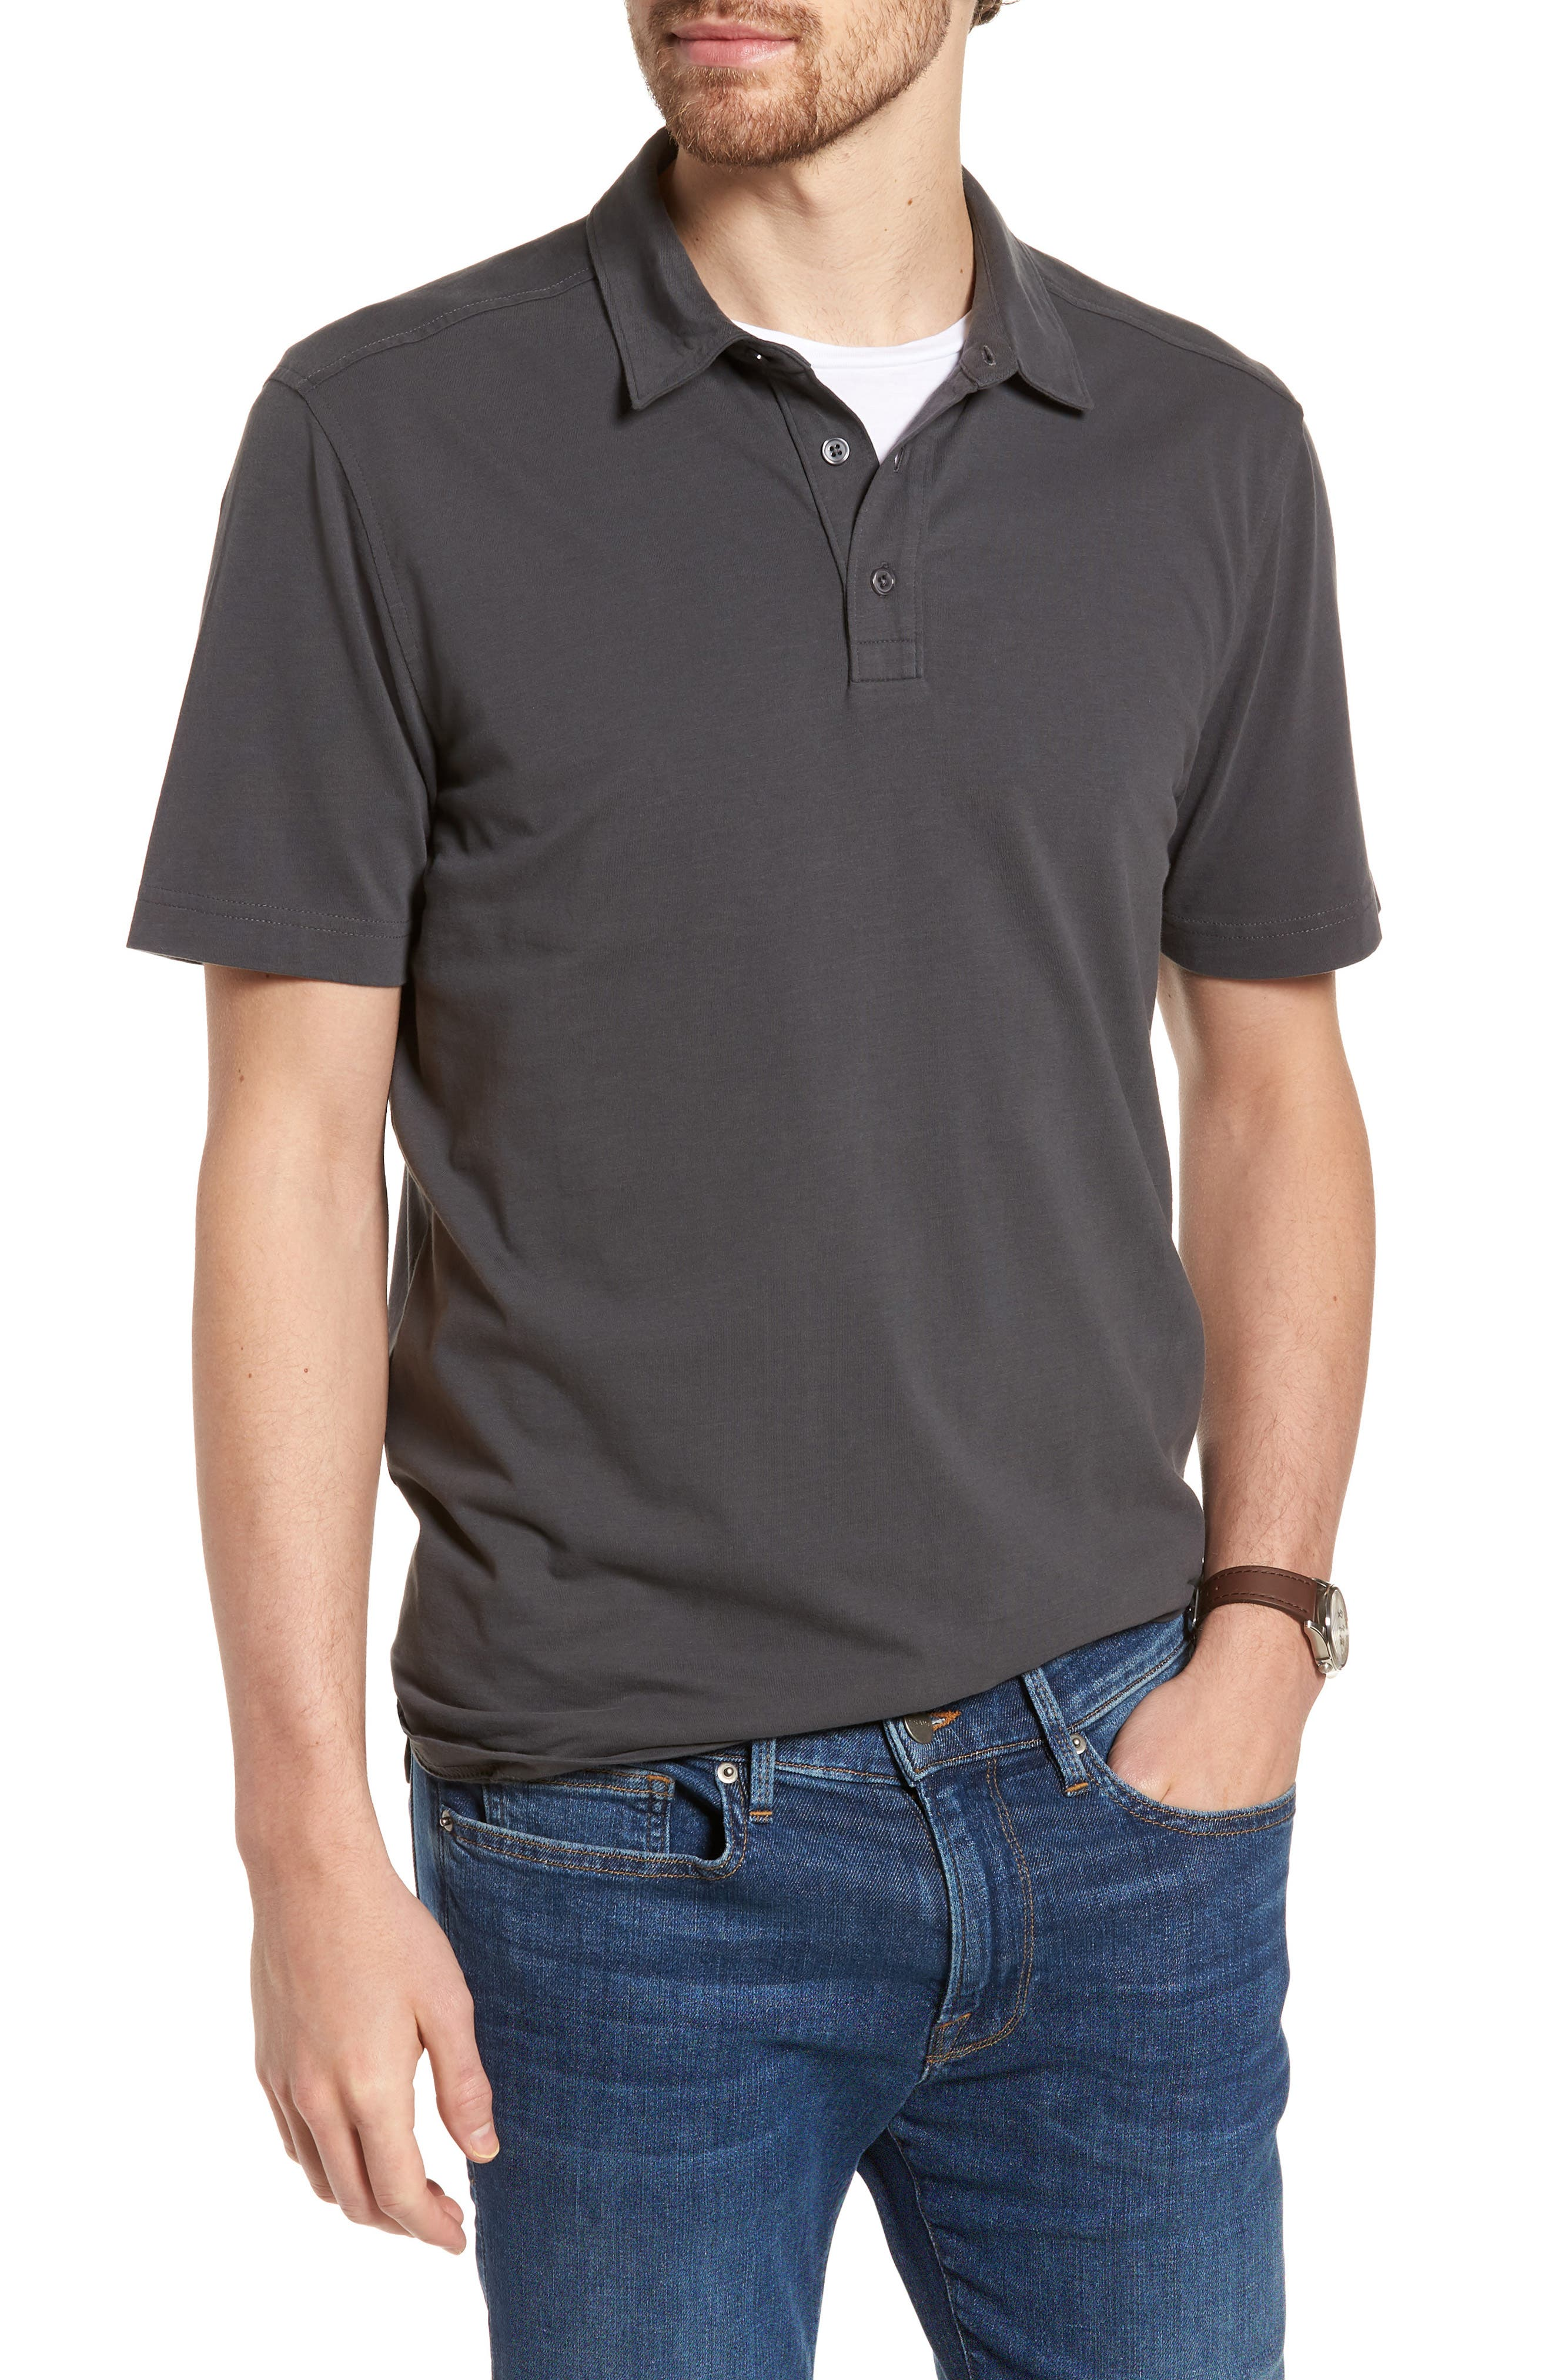 1901 Brushed Pima Cotton Jersey Polo Recommend Online aDsKh